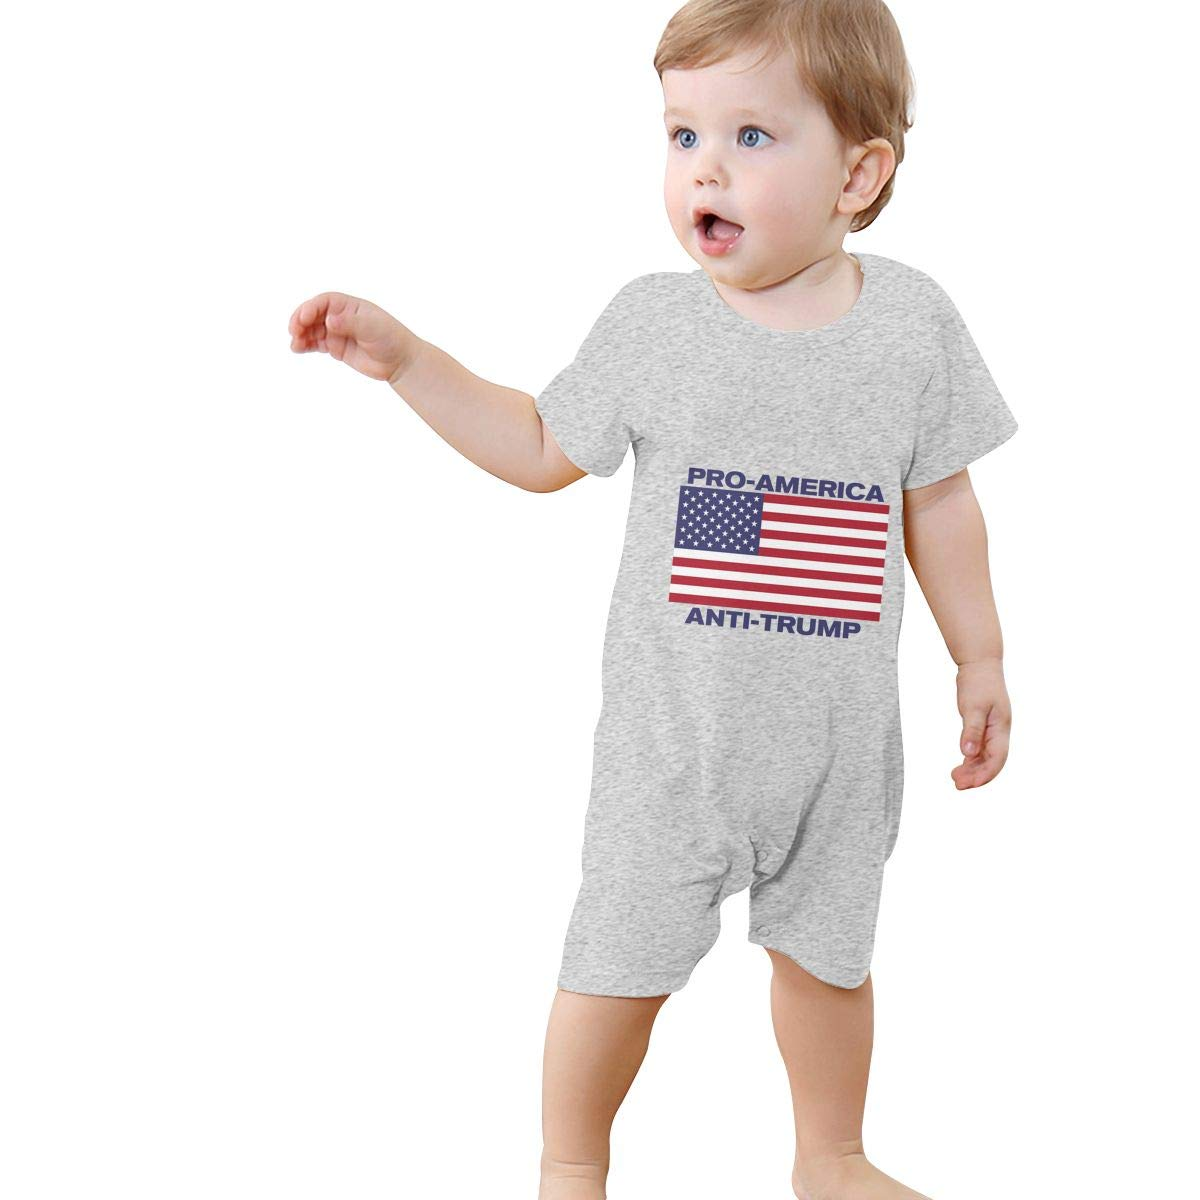 Baby Boys Girls Short Sleeve Jumpsuit Pro-America Anti-Trump Flag Cotton Romper